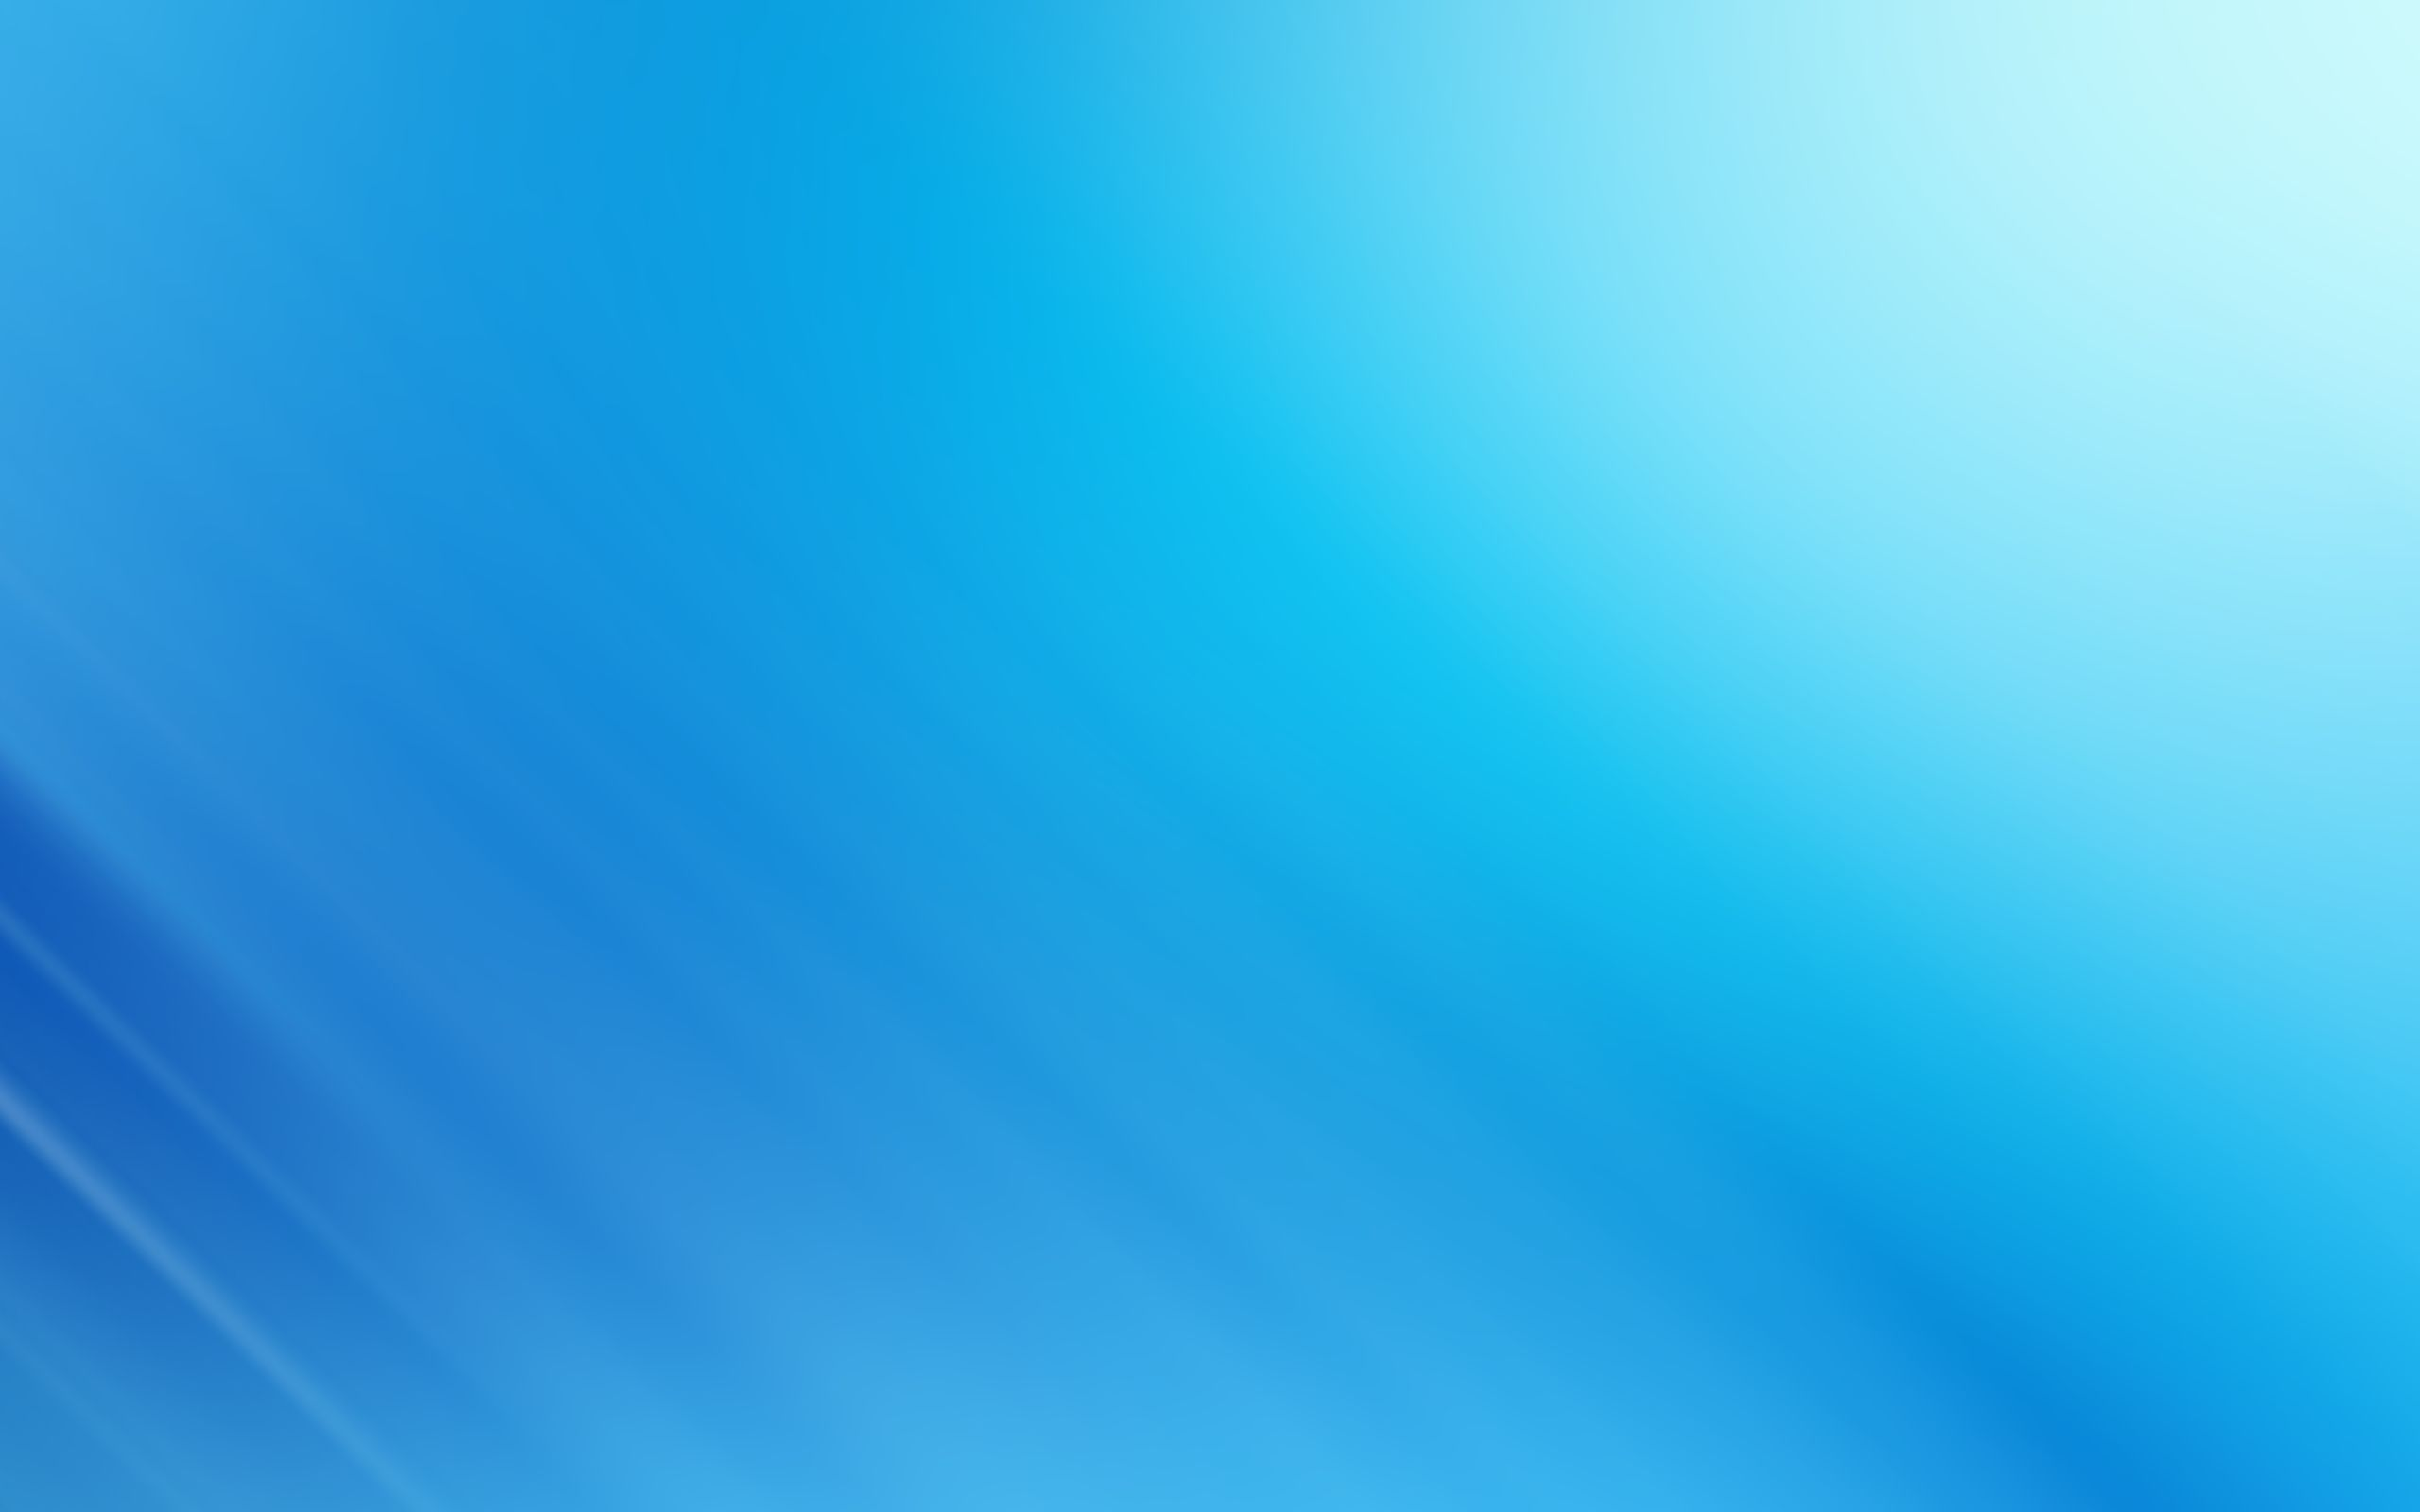 Blue Blank Wallpaper